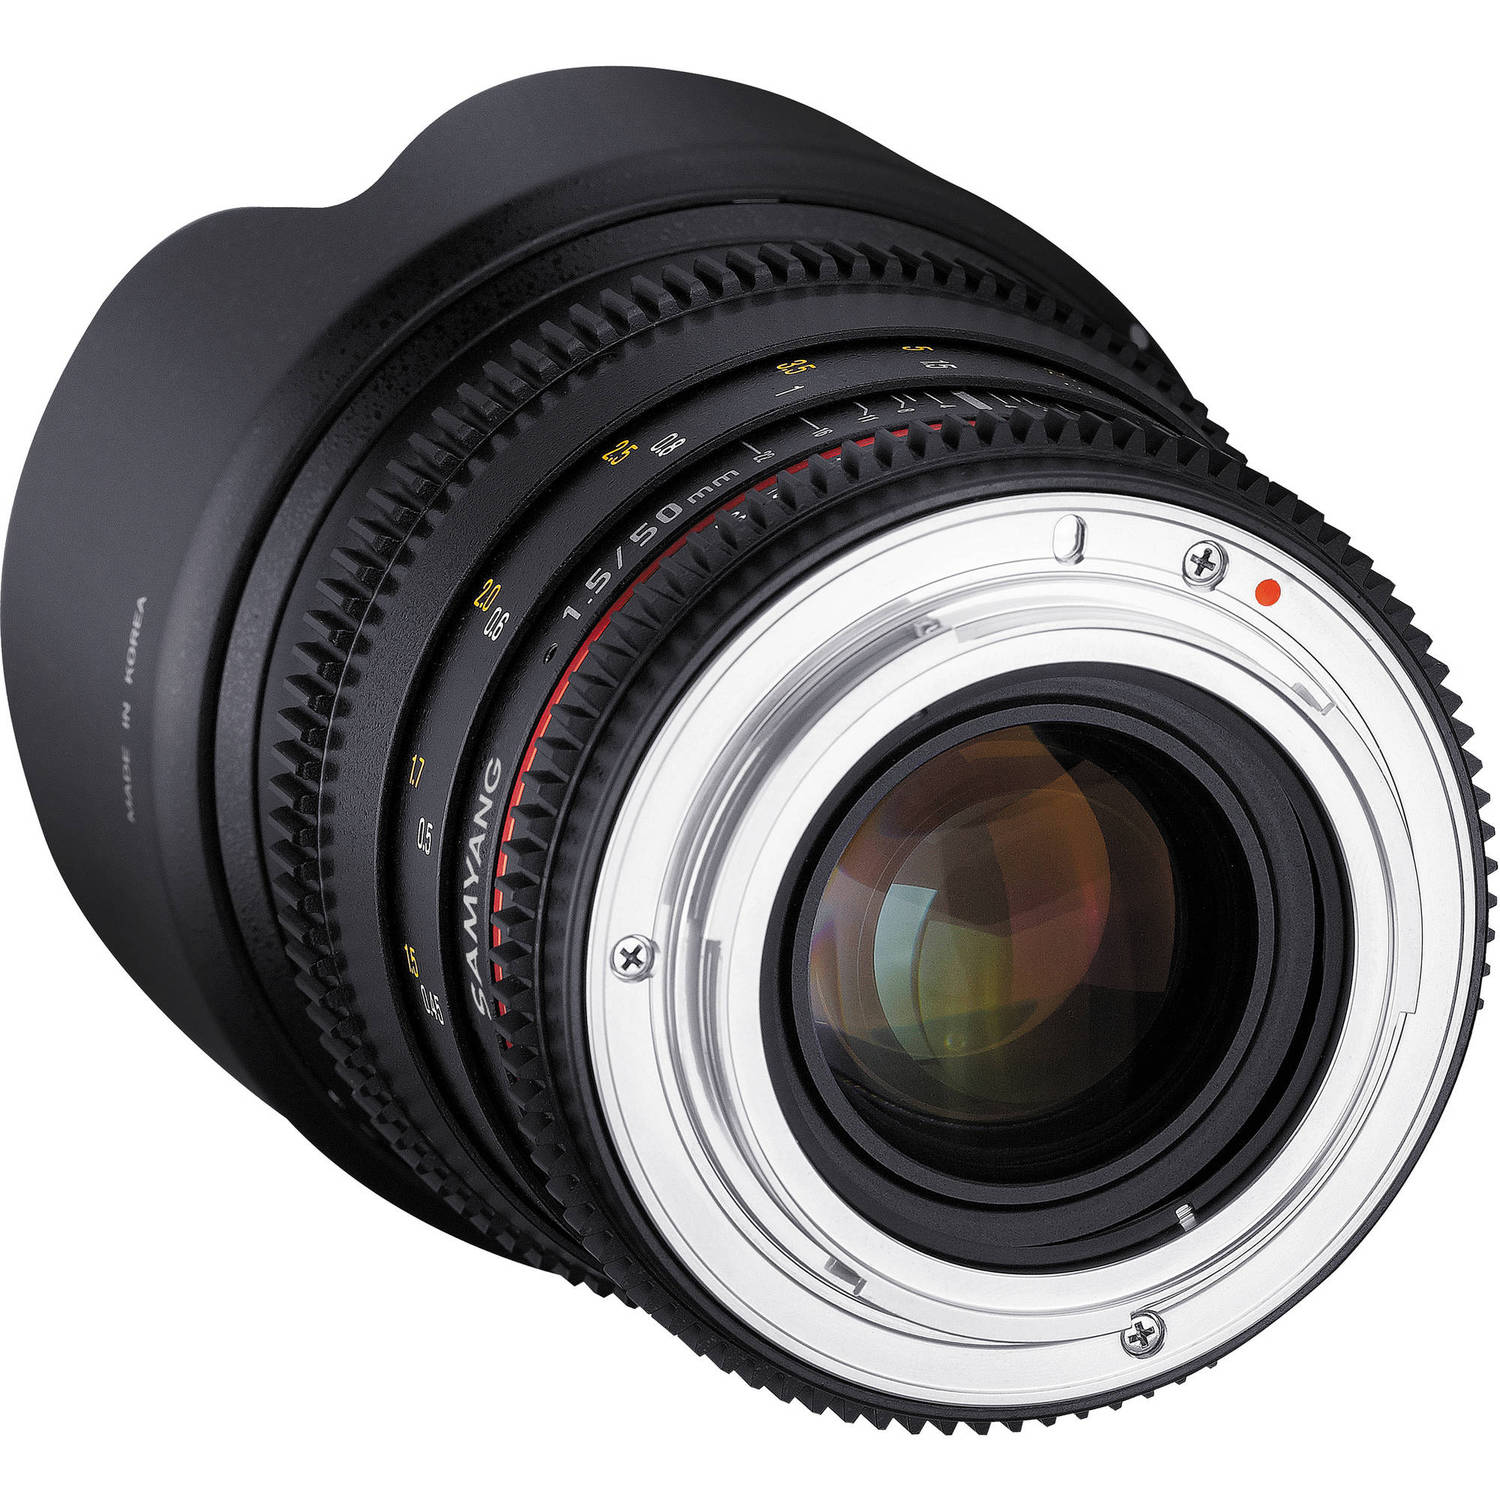 لنز سامیانگ    Samyang 50mm T1.5 VDSLR AS UMC Lens for Canon EF Mount